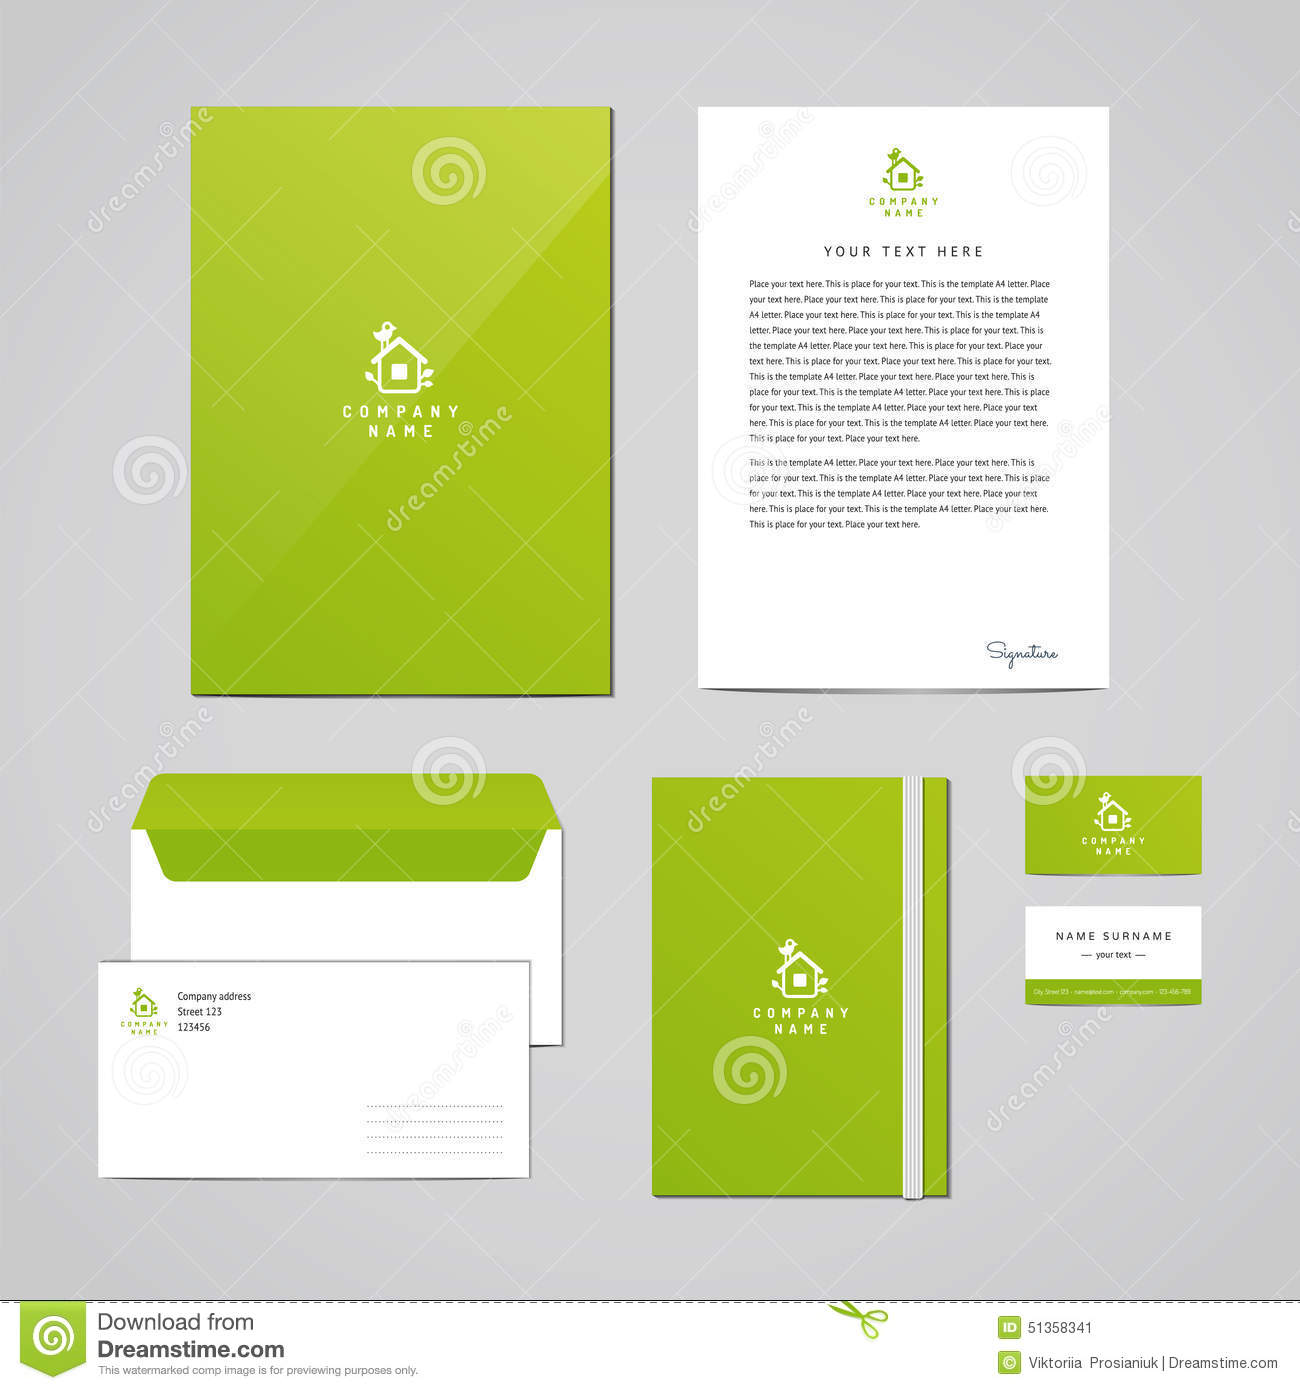 Corporate Identity Eco Design Template. Documentation For Business ...